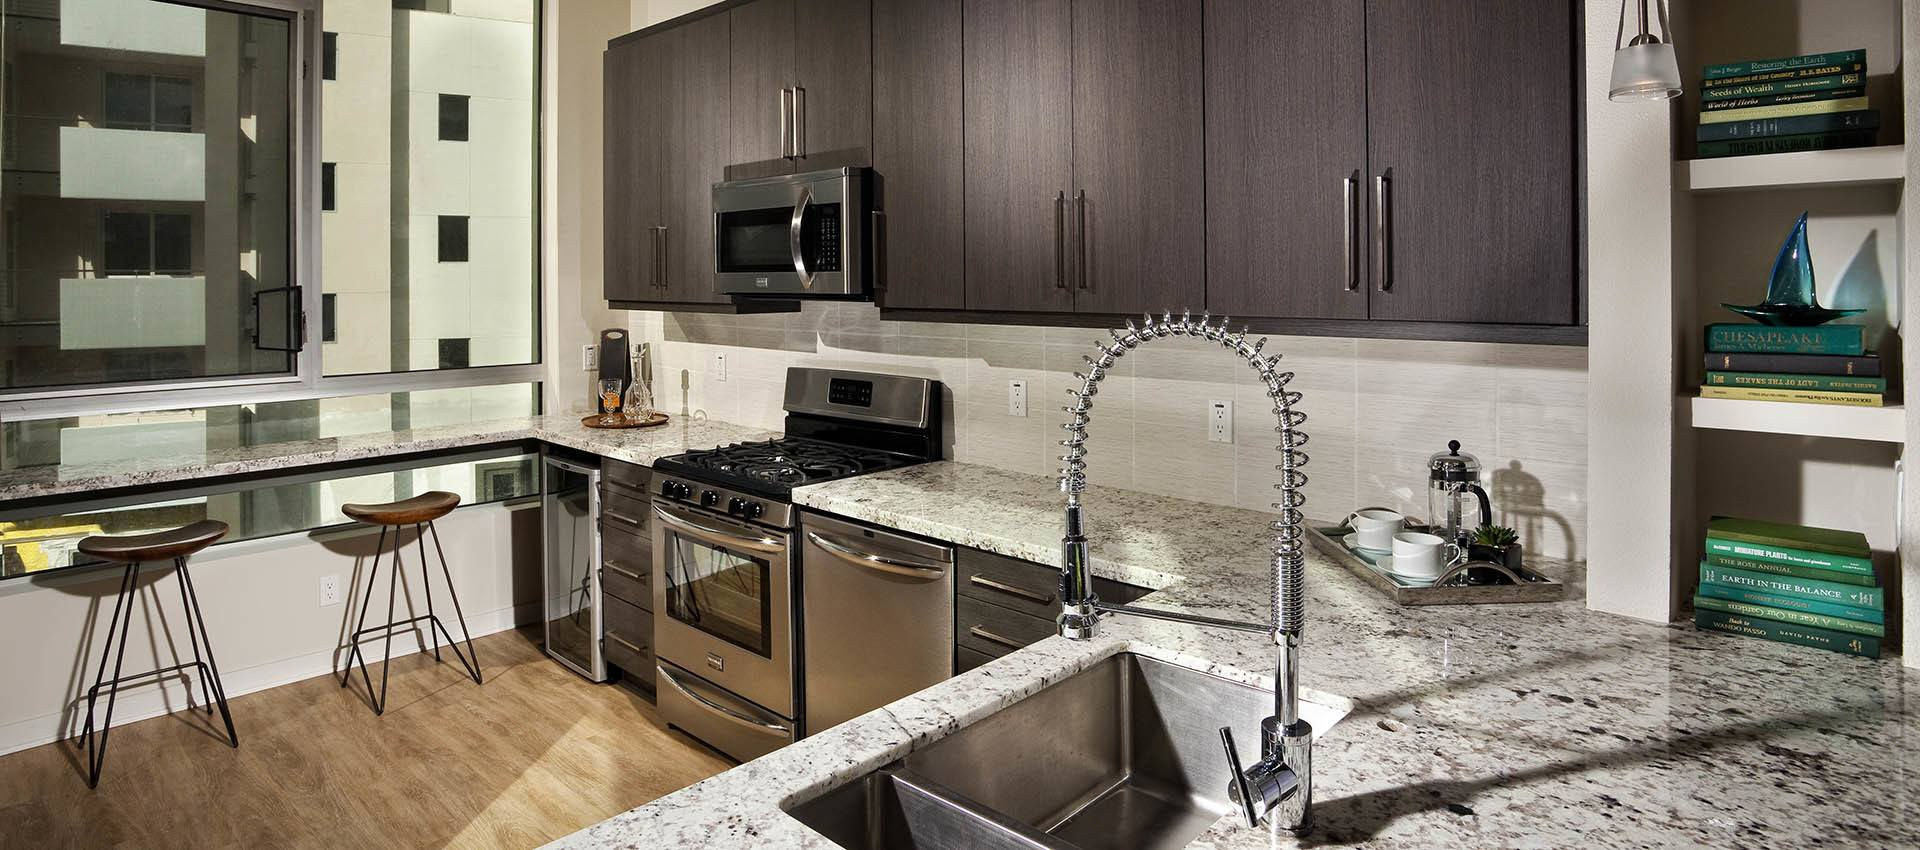 Granite Countertops at apartments in Glendale, CA